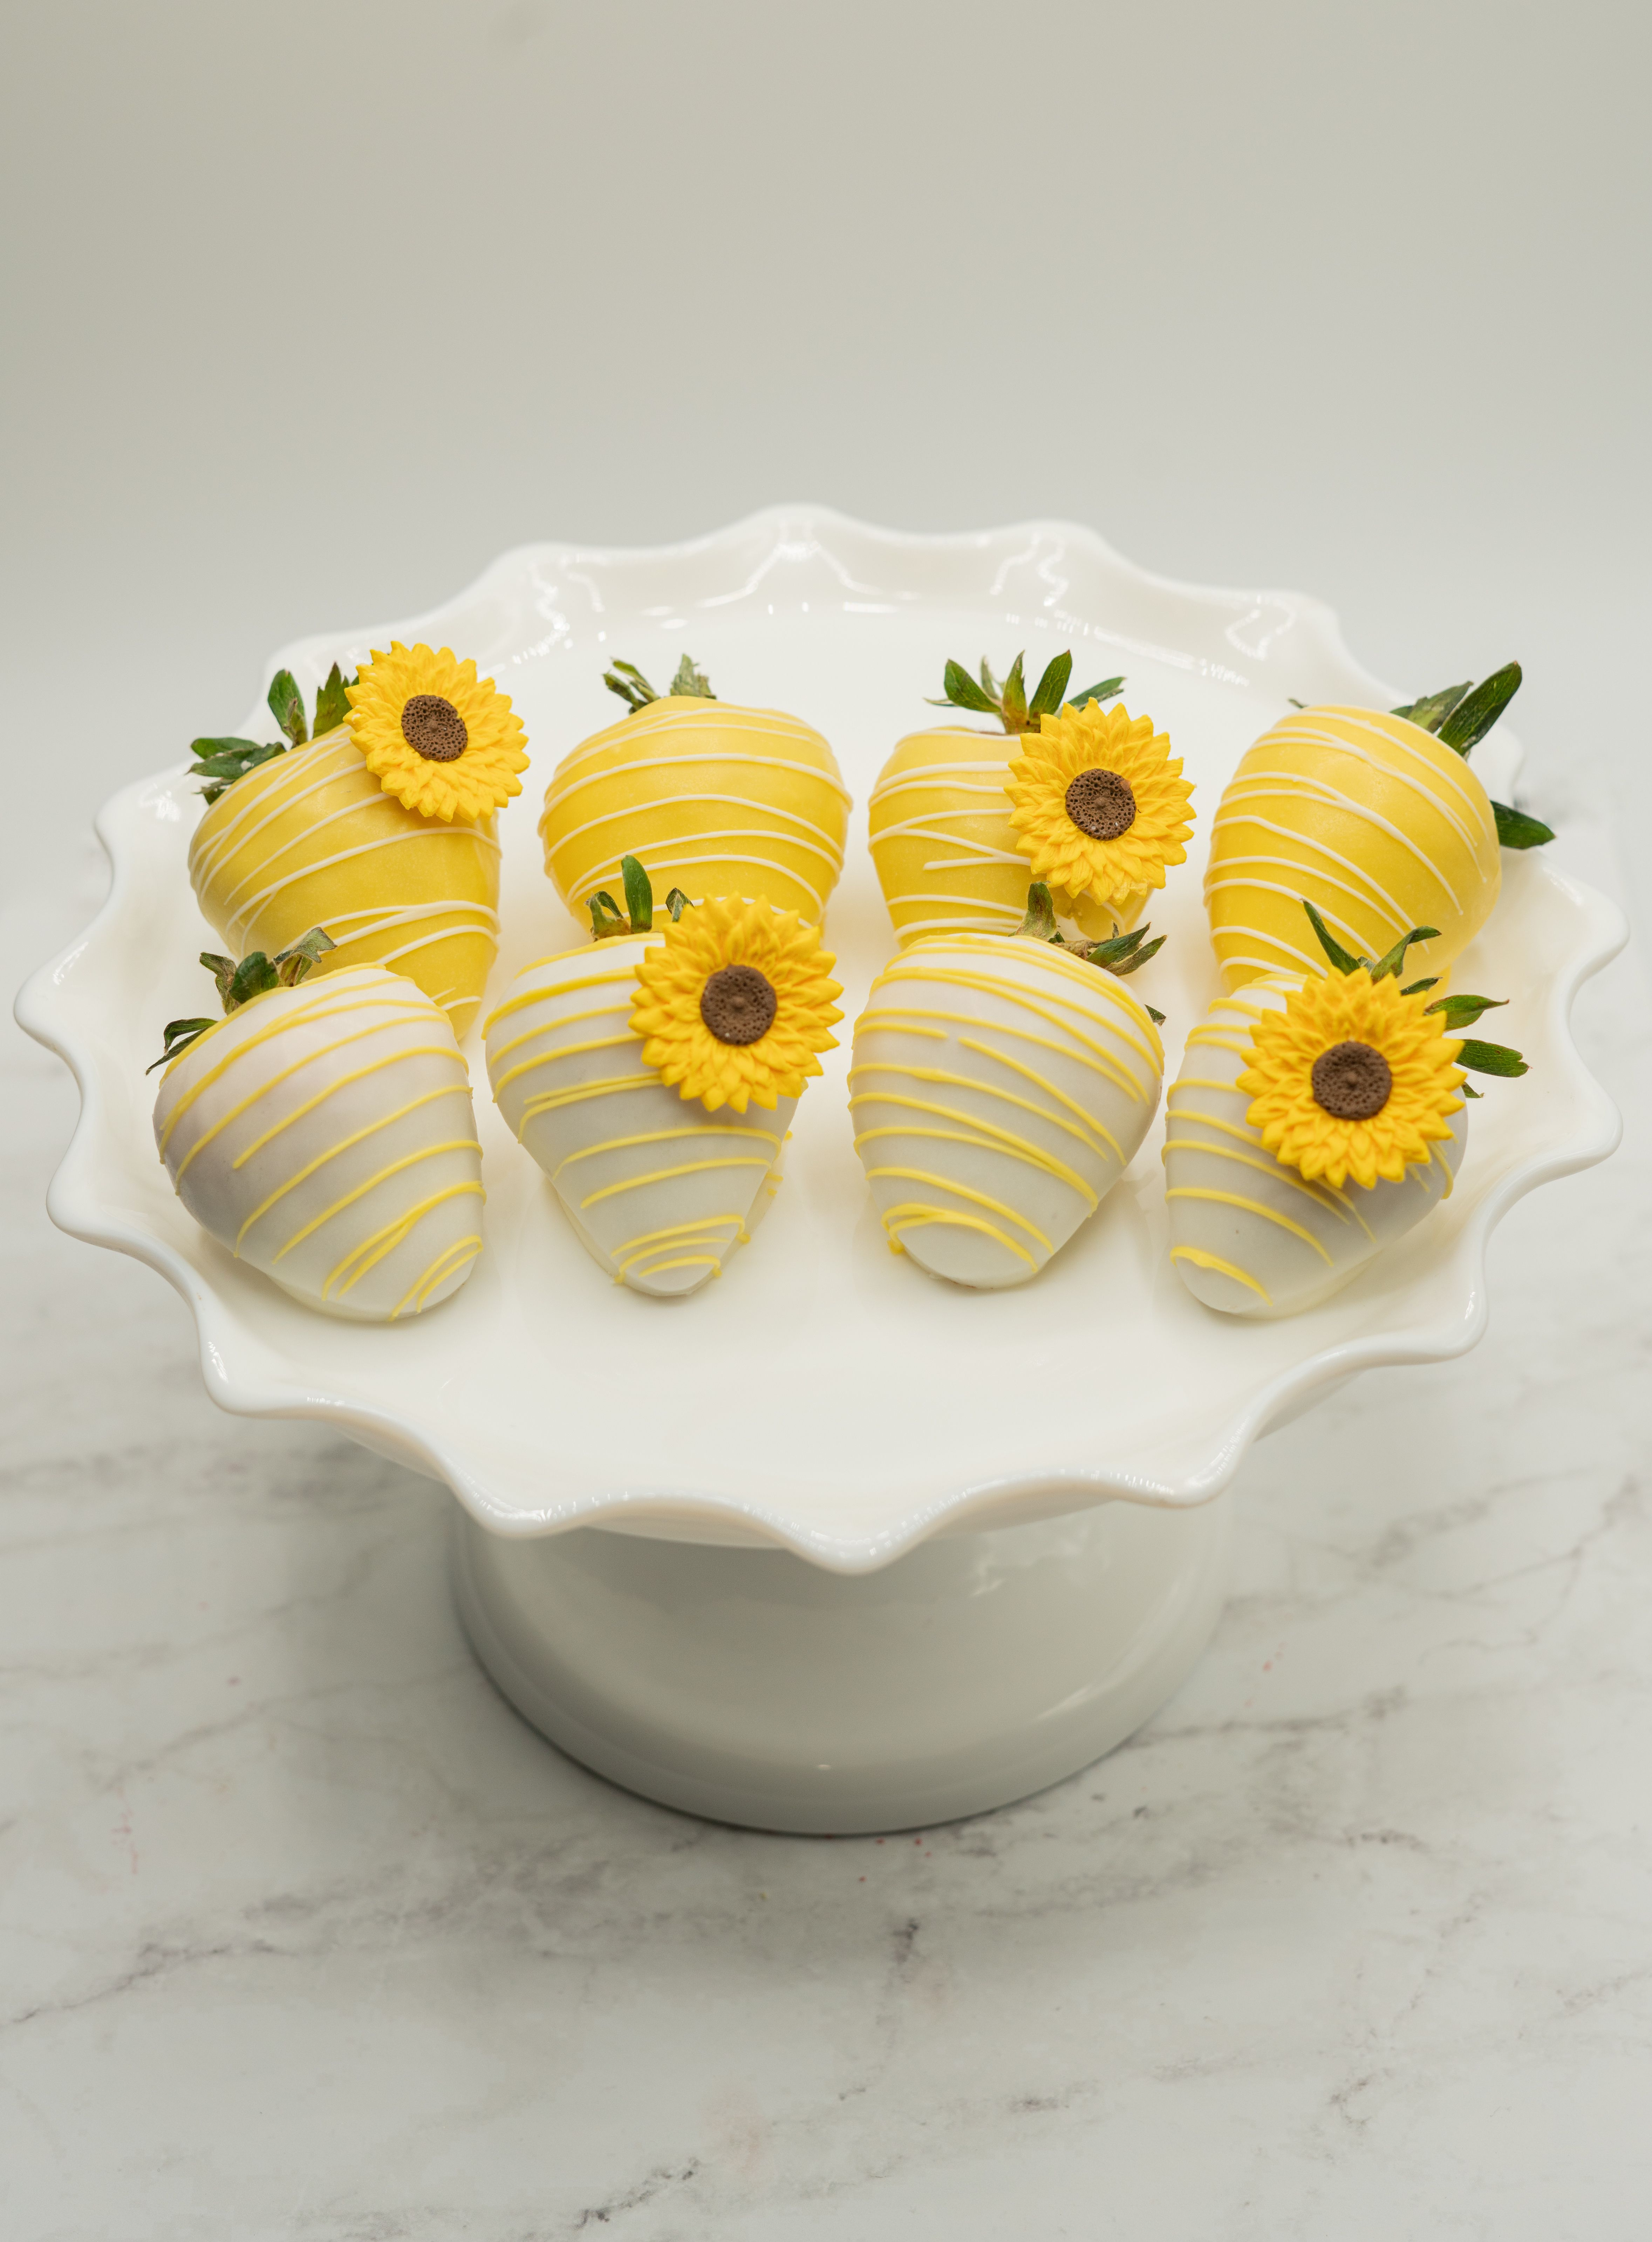 Sunflower Theme chocolate covered strawberries #sunflowercupcakes